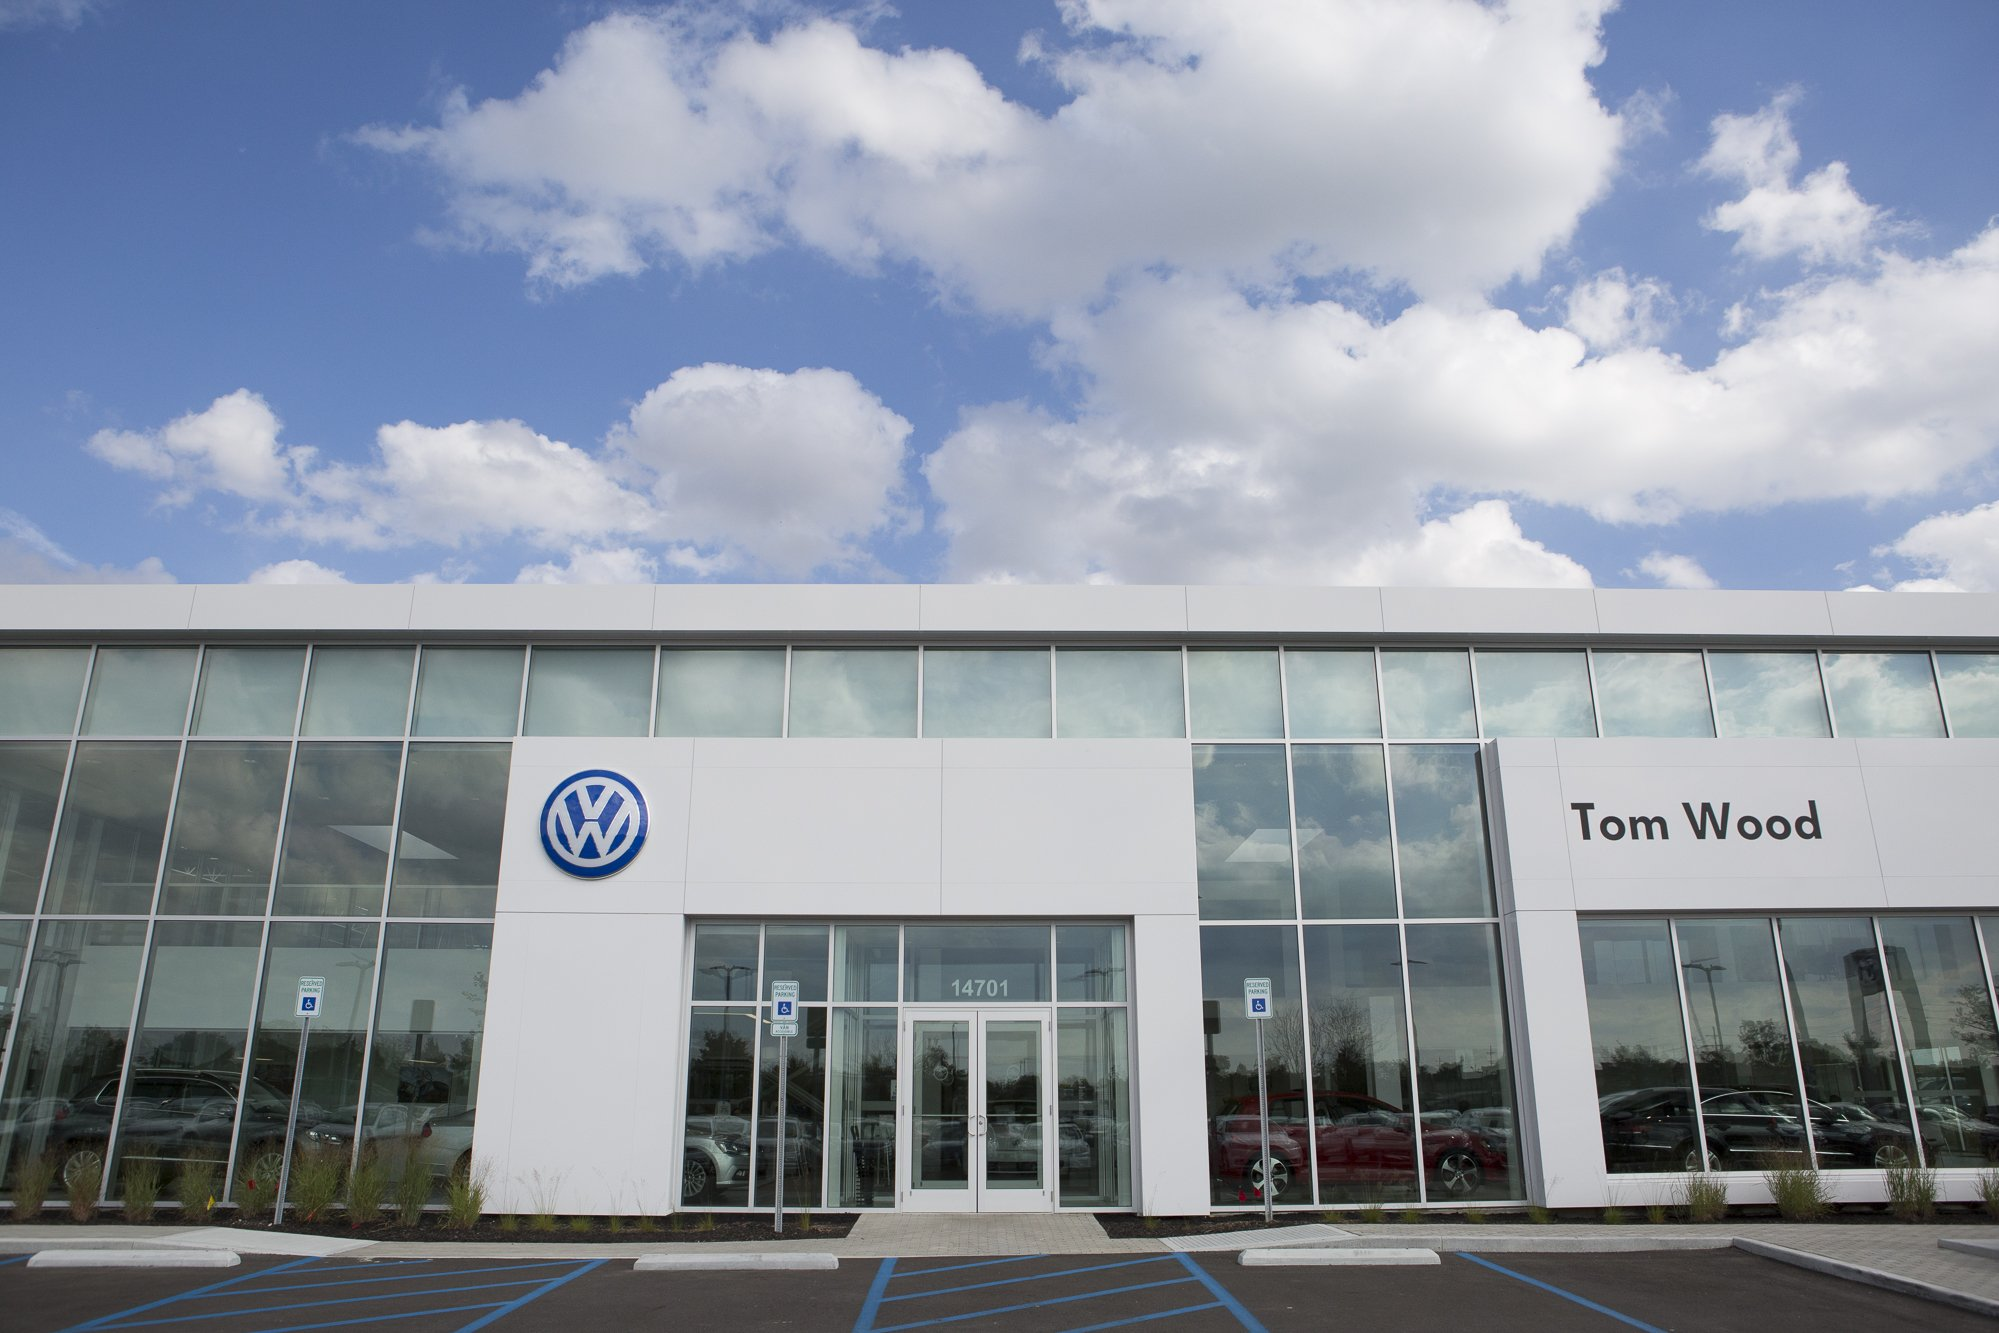 Capitol Construction: Tom Wood Volkswagen | Commercial Photography